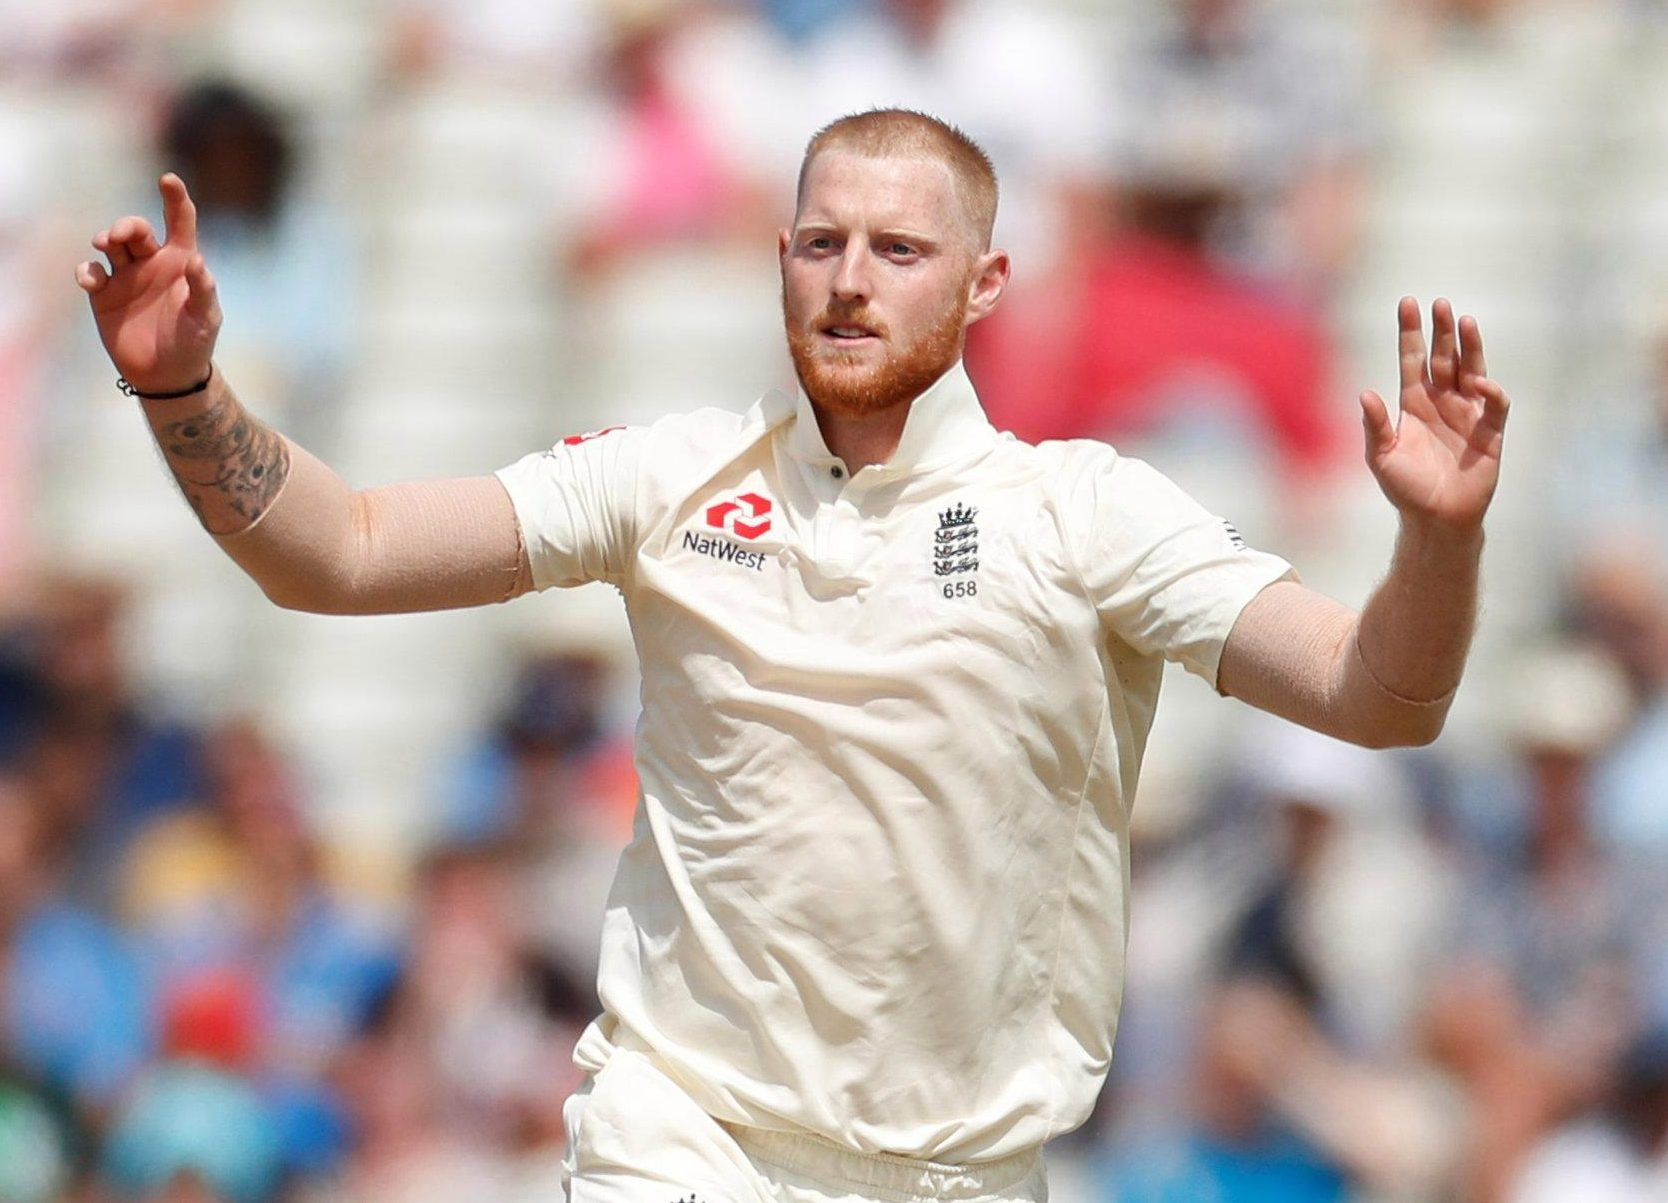 Ben Stokes must watch his step off the field and become more of a role model